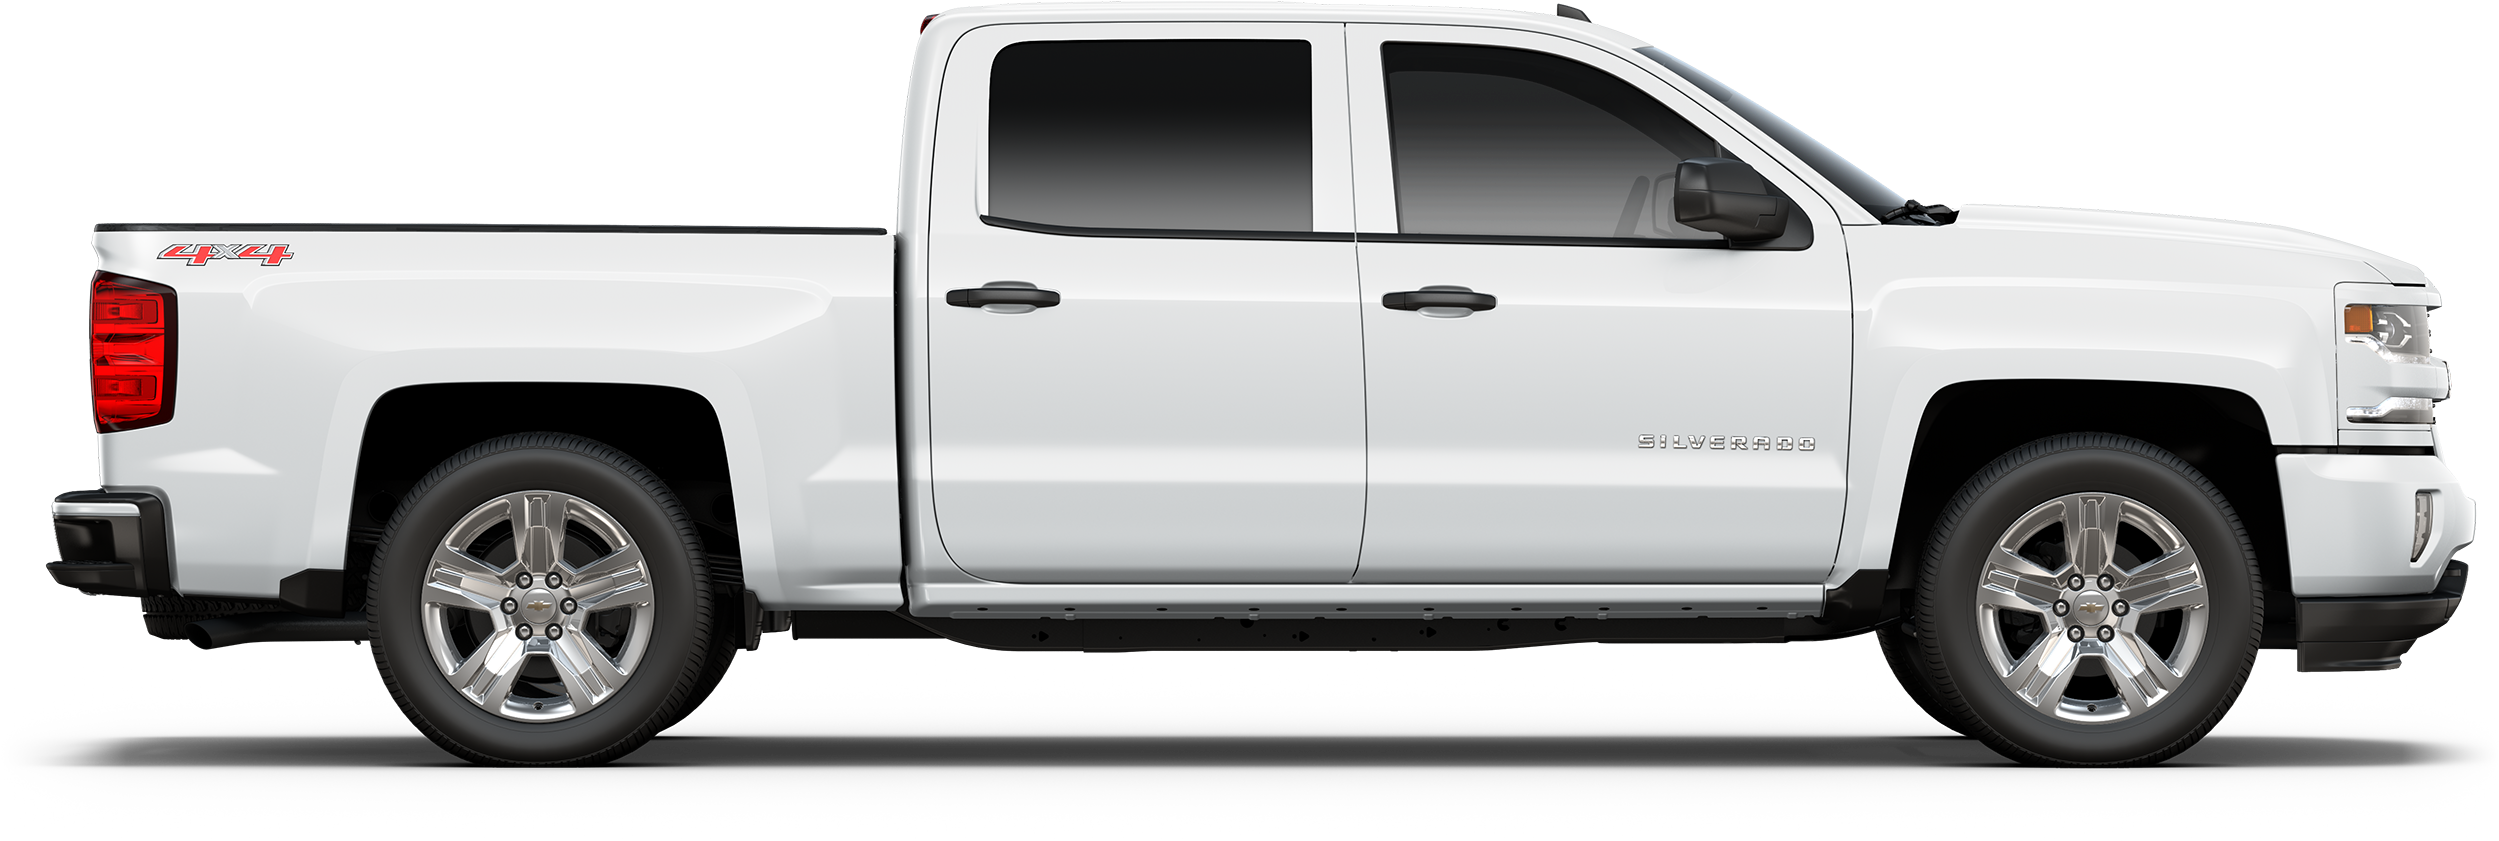 HD New 2019 Chevrolet Silverado 1500 Custom Crw Tb.